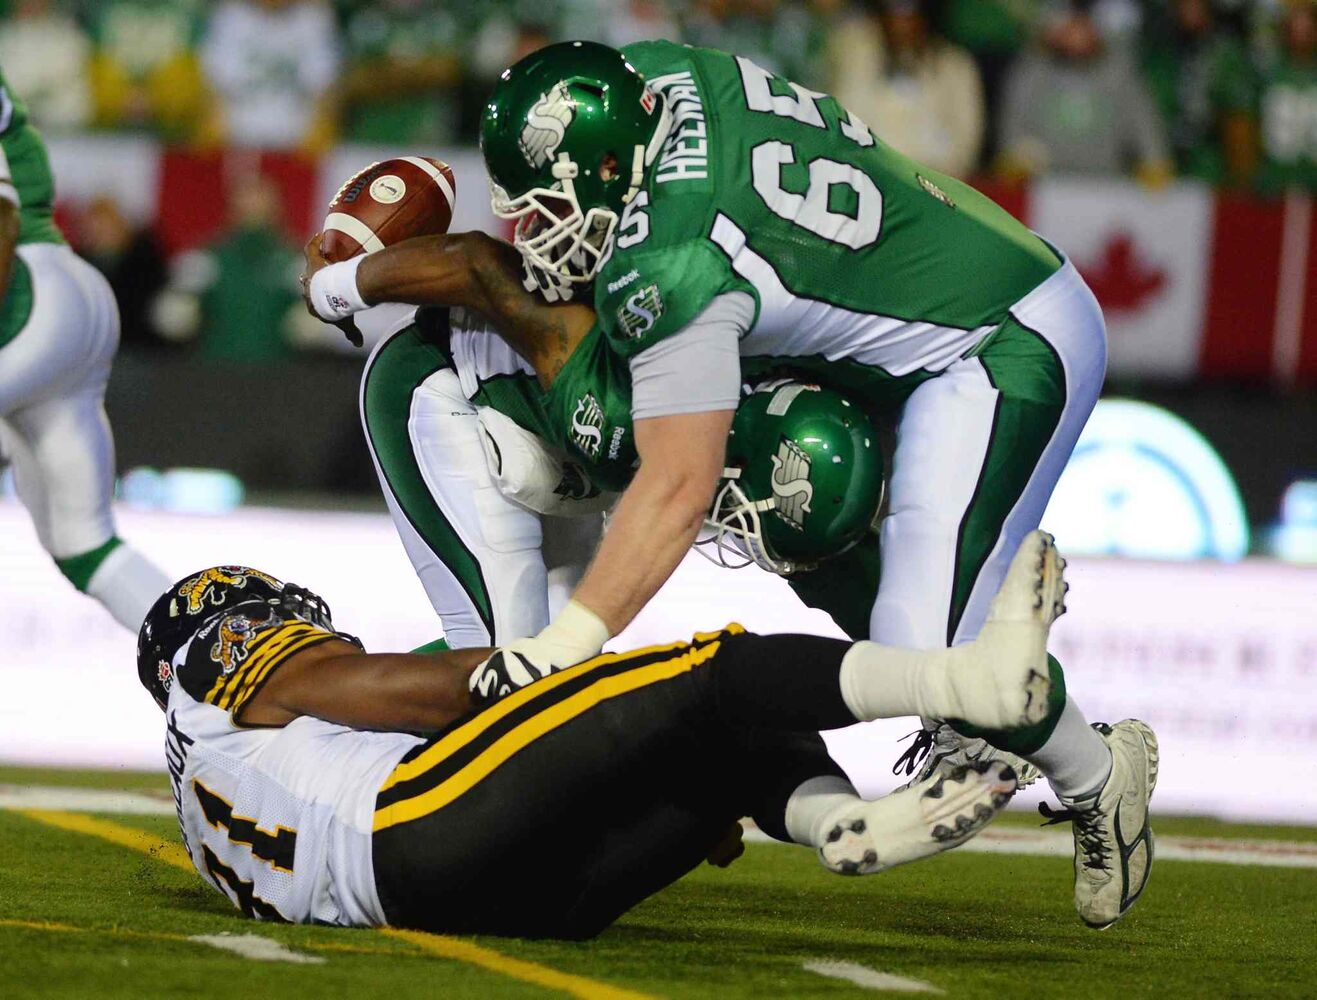 Saskatchewan Roughriders quarterback Darian Durant loses the ball as he is tackled by Hamilton Tiger-Cats defensive lineman Brandon Boudreaux while Roughriders offensive lineman Ben Heenan covers during the first quarter.